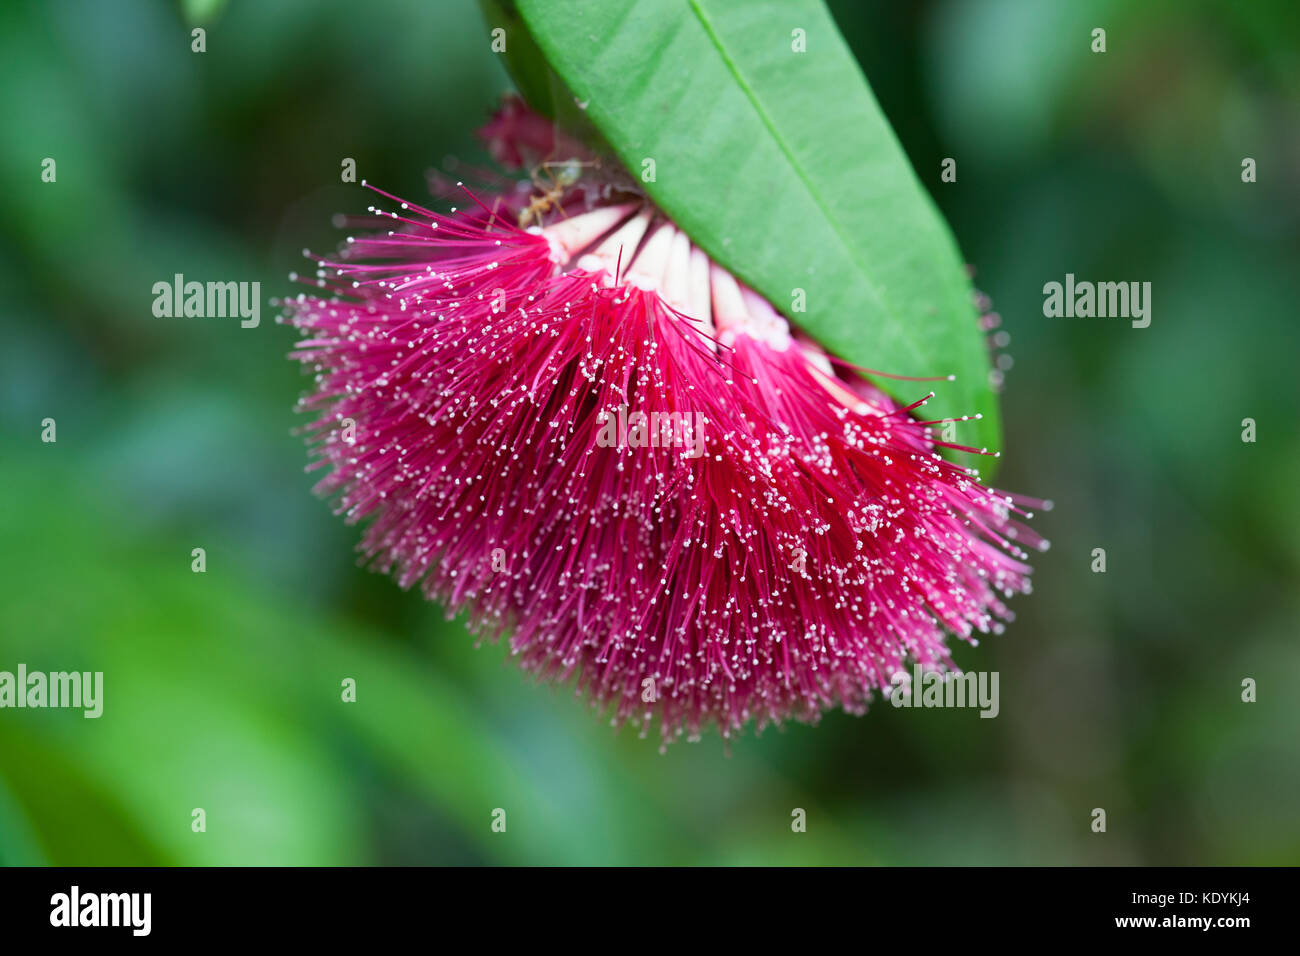 Pilly stock photos pilly stock images alamy for Diwan name wallpaper